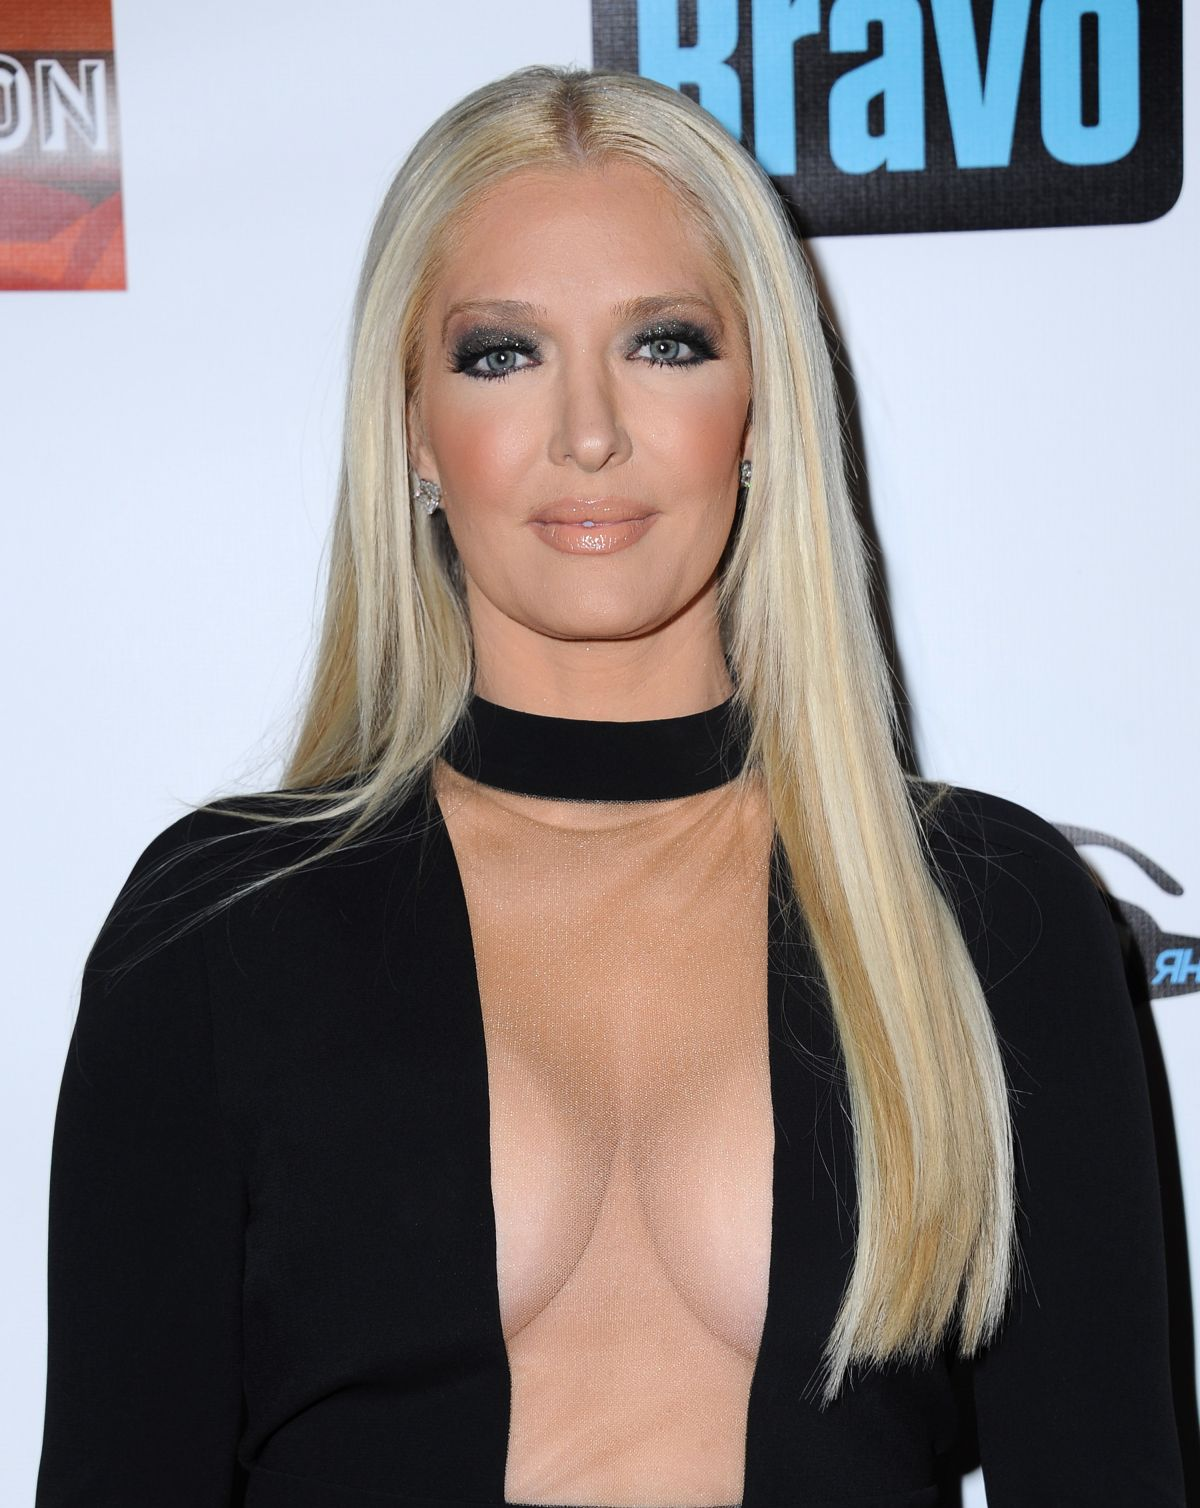 ERIKA GIRARDI at The Real Housewives of Beverly Hills, Season 6 Premiere Party in Hollywood 12/03/2015